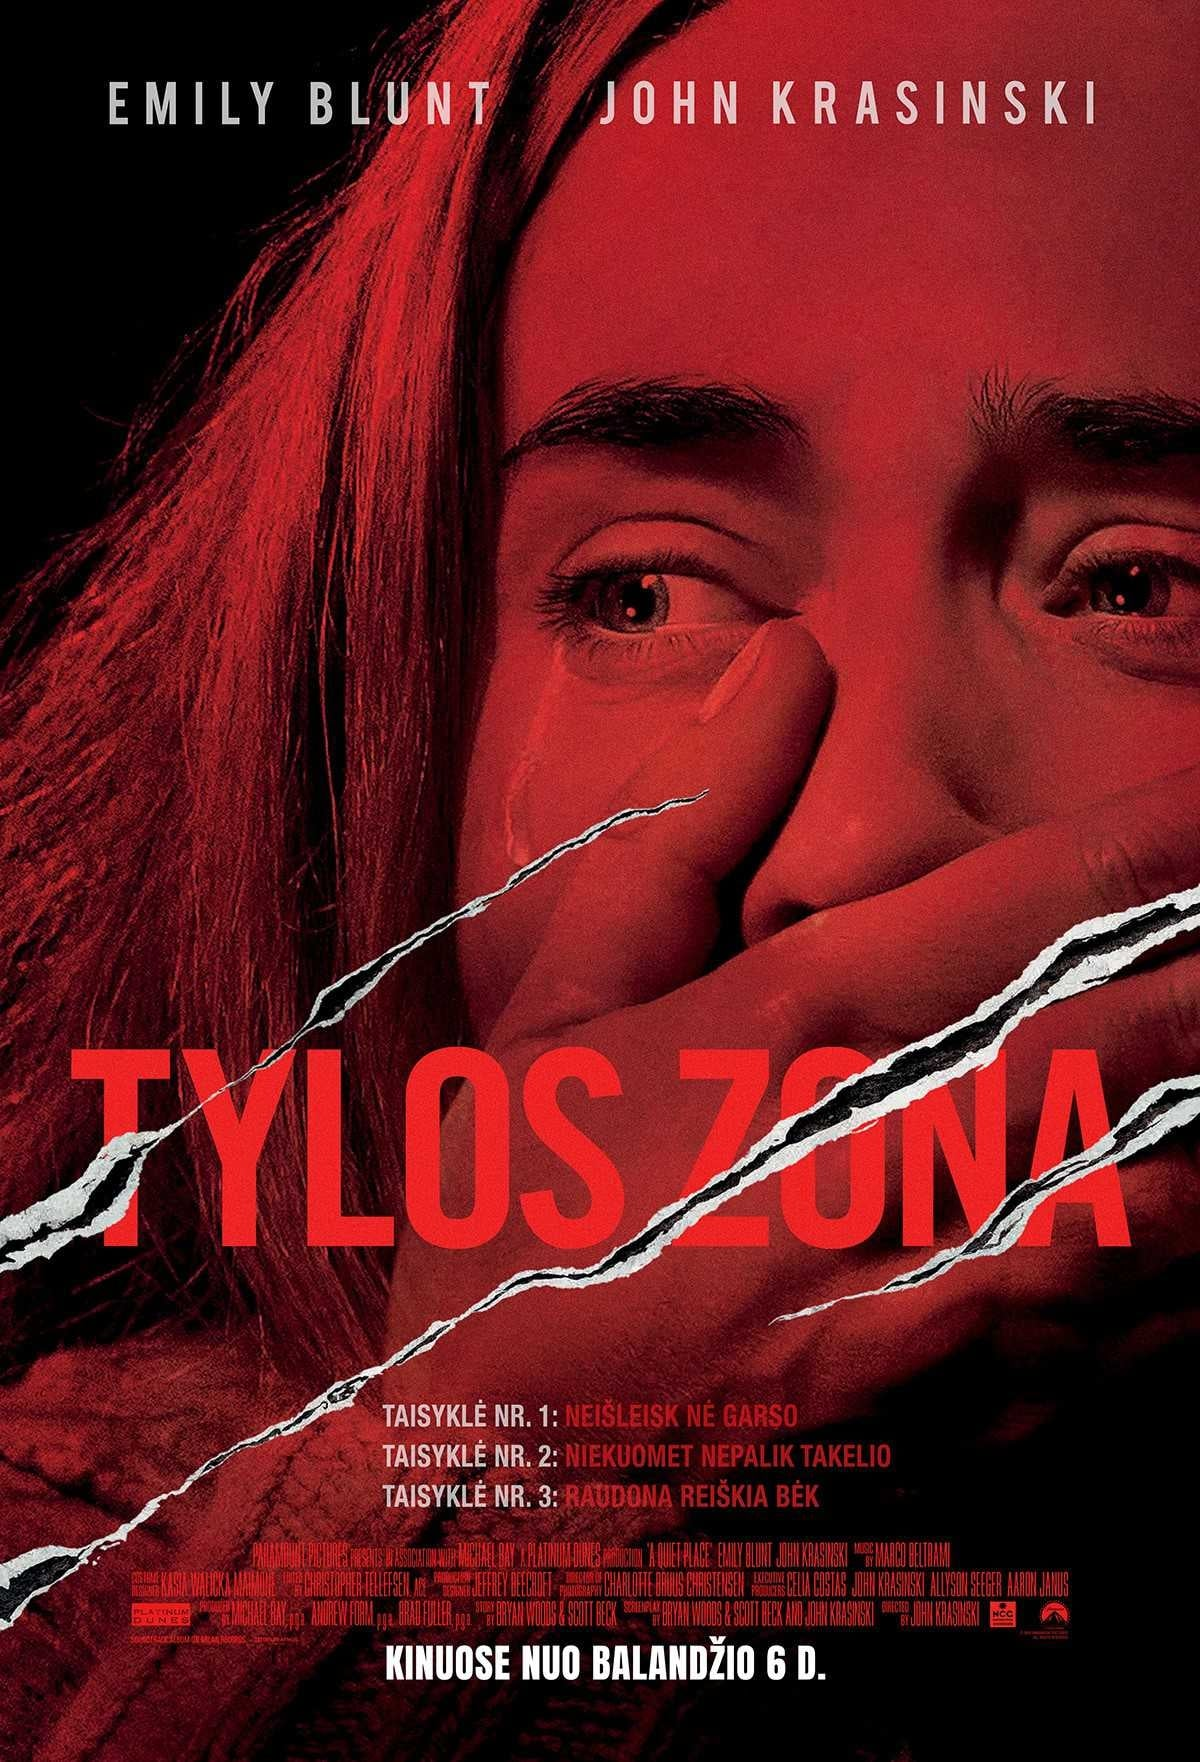 Tylos zona